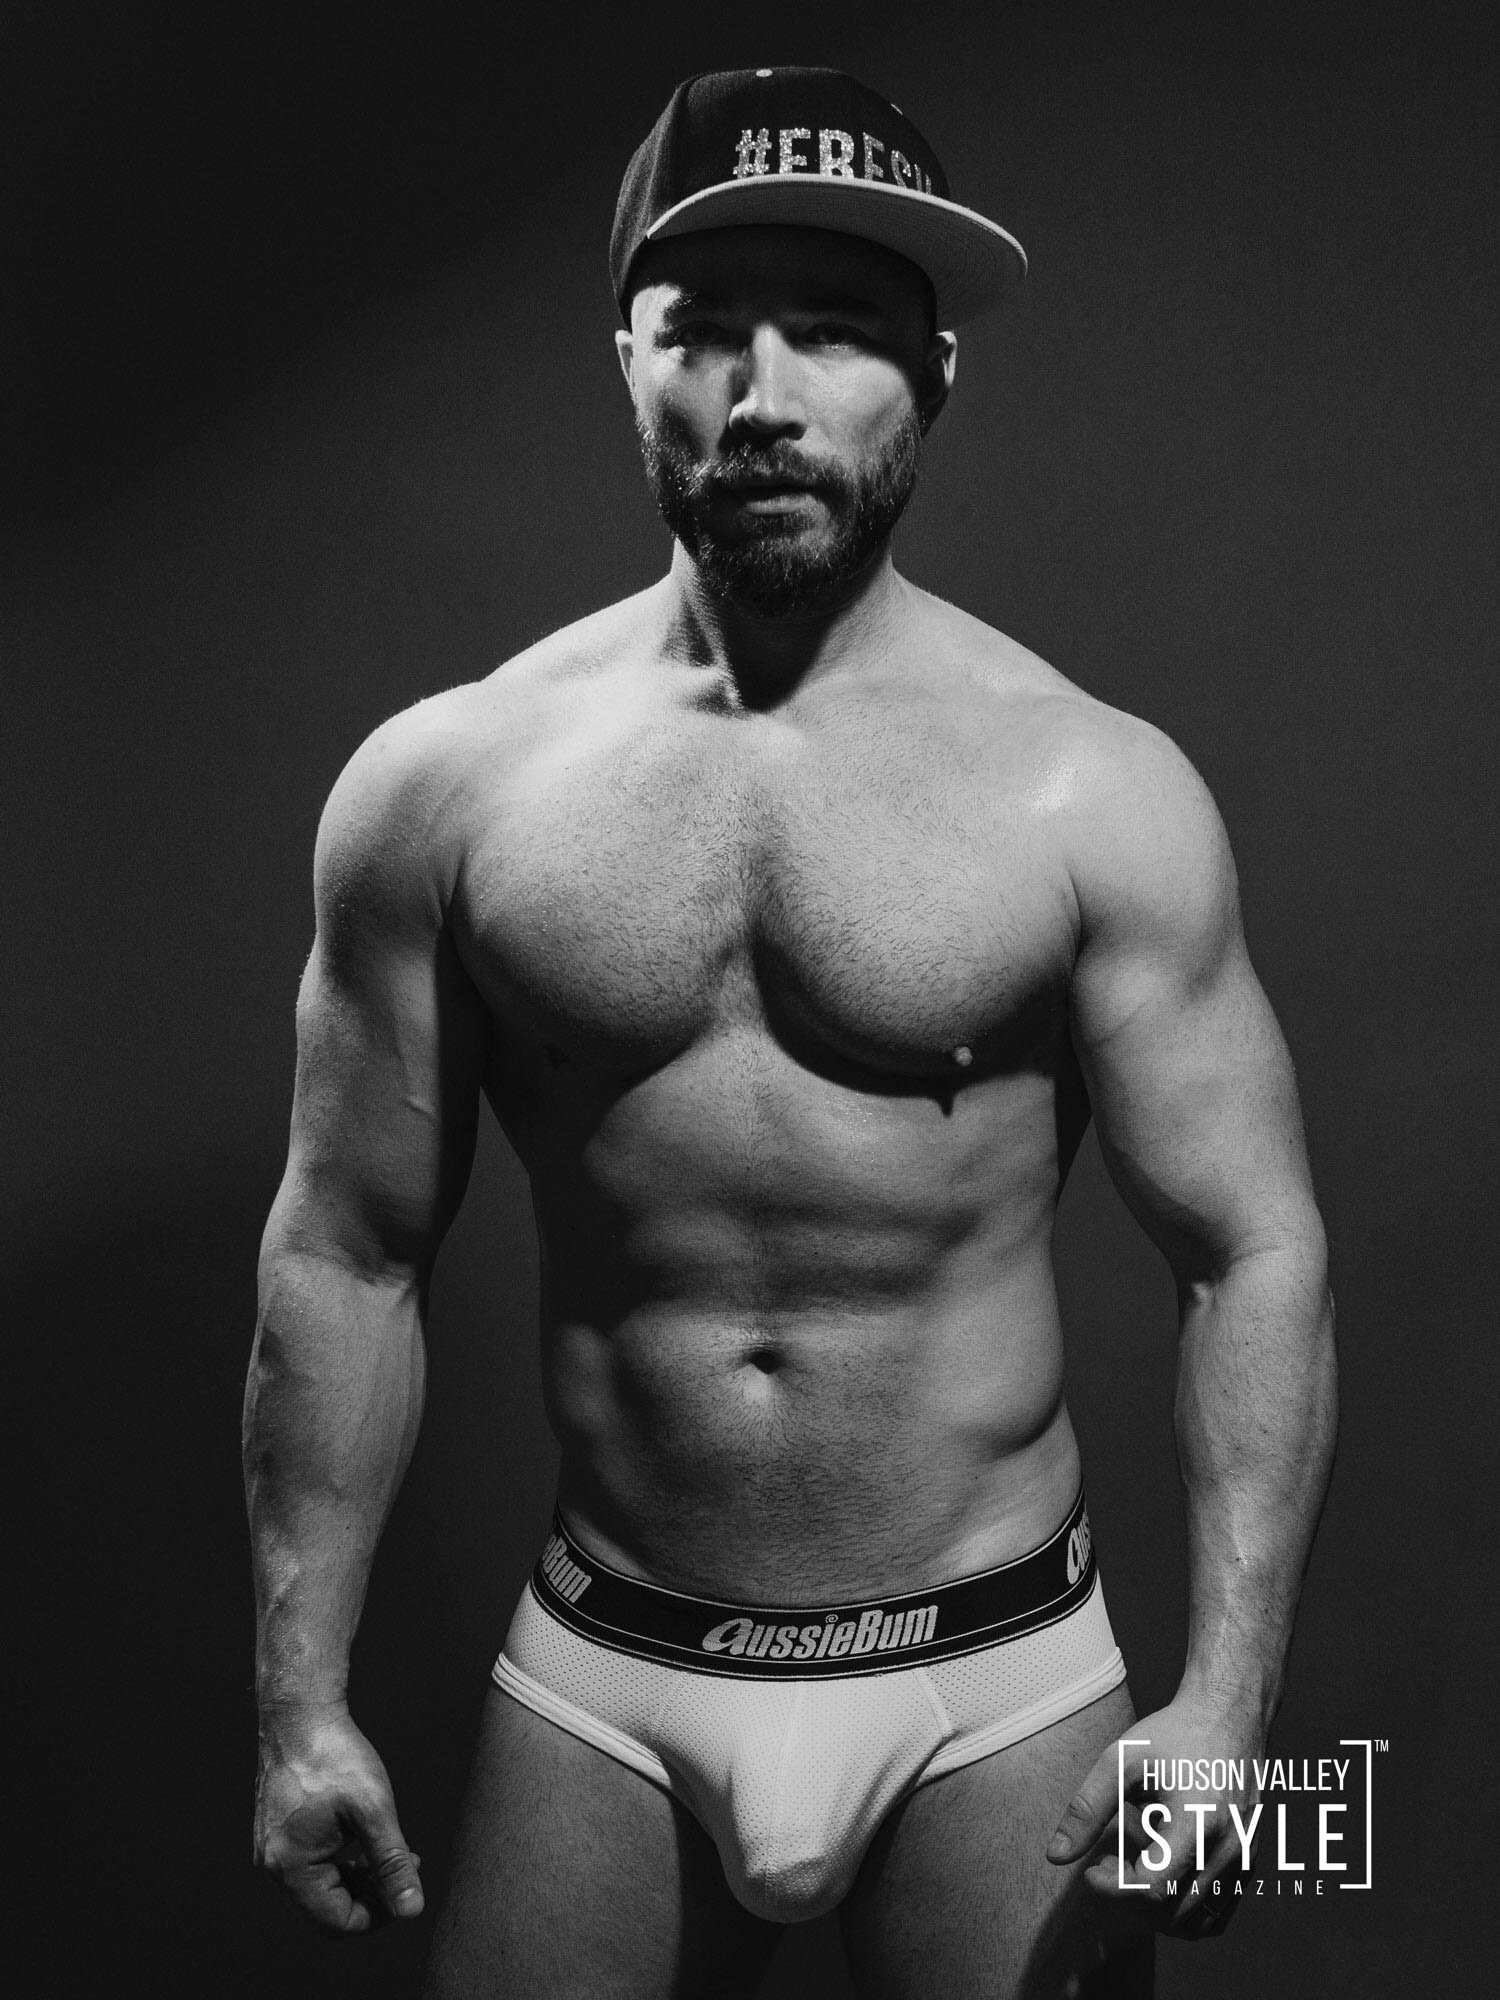 – Fine Art Fitness and Bodybuilding Photography by Photographer Maxwell Alexander–Best Gay OnlyFans Fitness Coach–Best Photographer on OnlyFans–Check out Private (18+) OnlyFans Gallery atOnlyFans.com/maxwellalexander.photofor even more Bodybuilding Motivation Fine Art Photography Work.